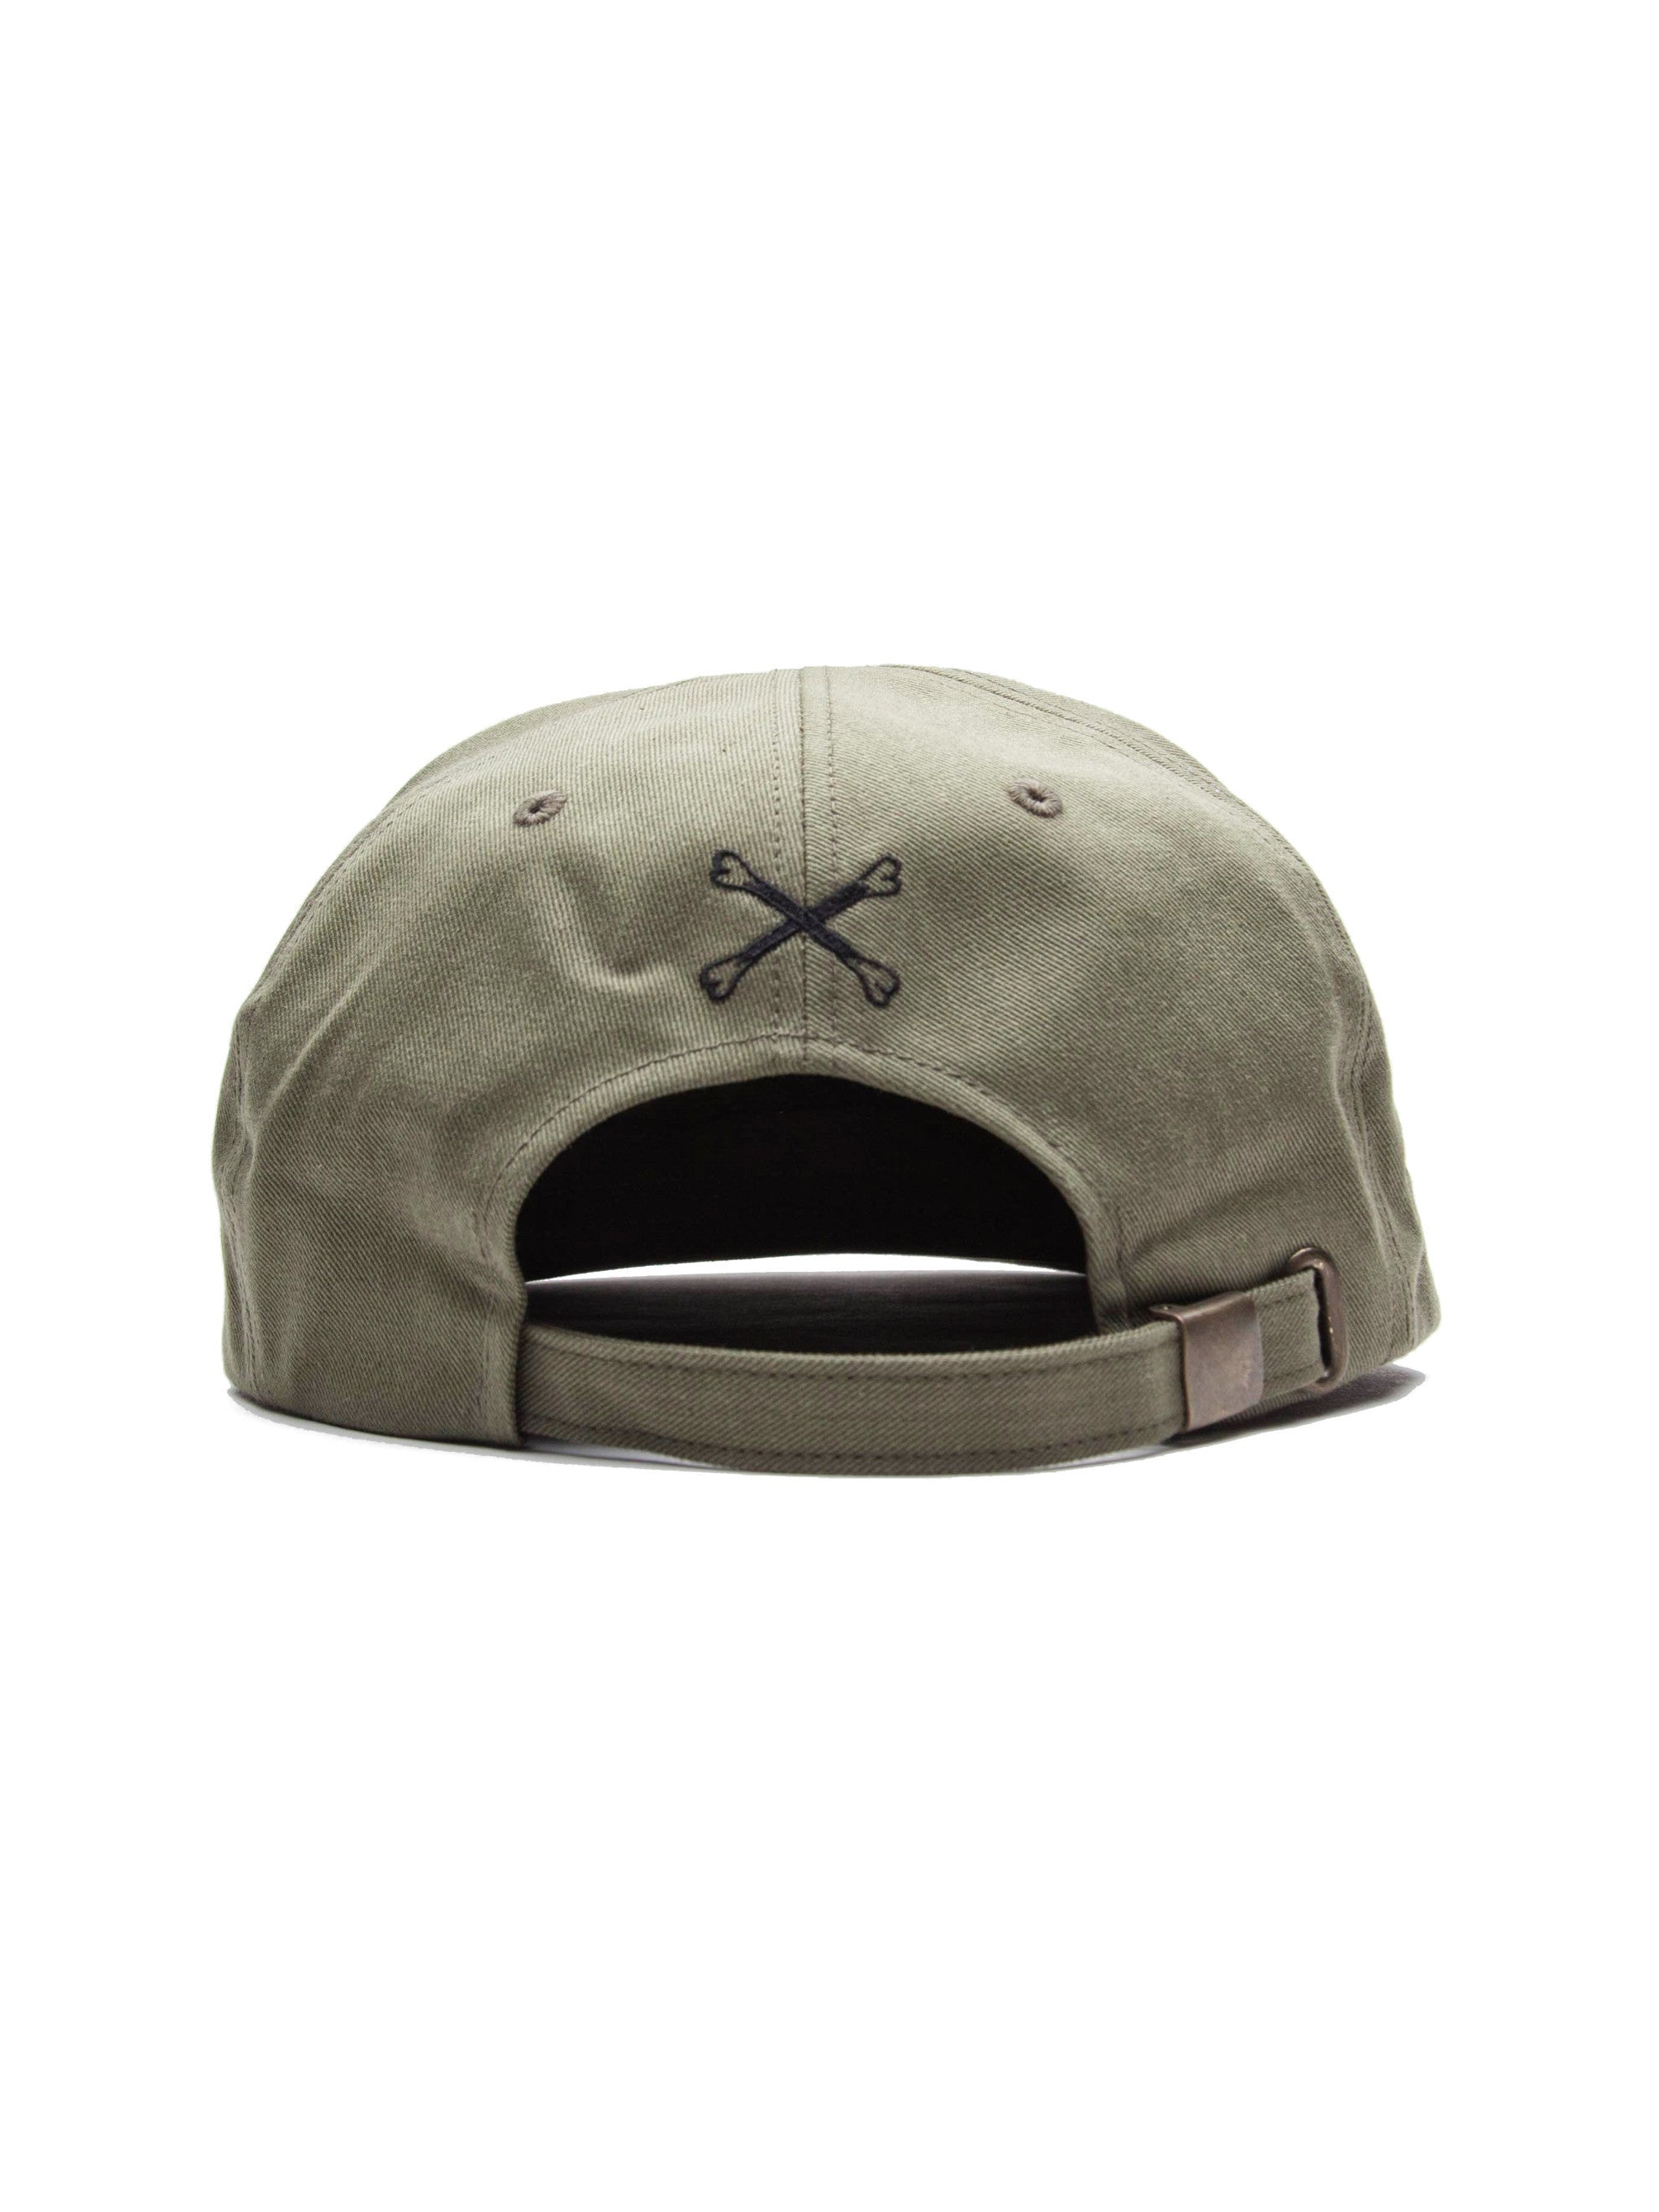 Olive Drab T-6 Cap (Cotton Chino) 5